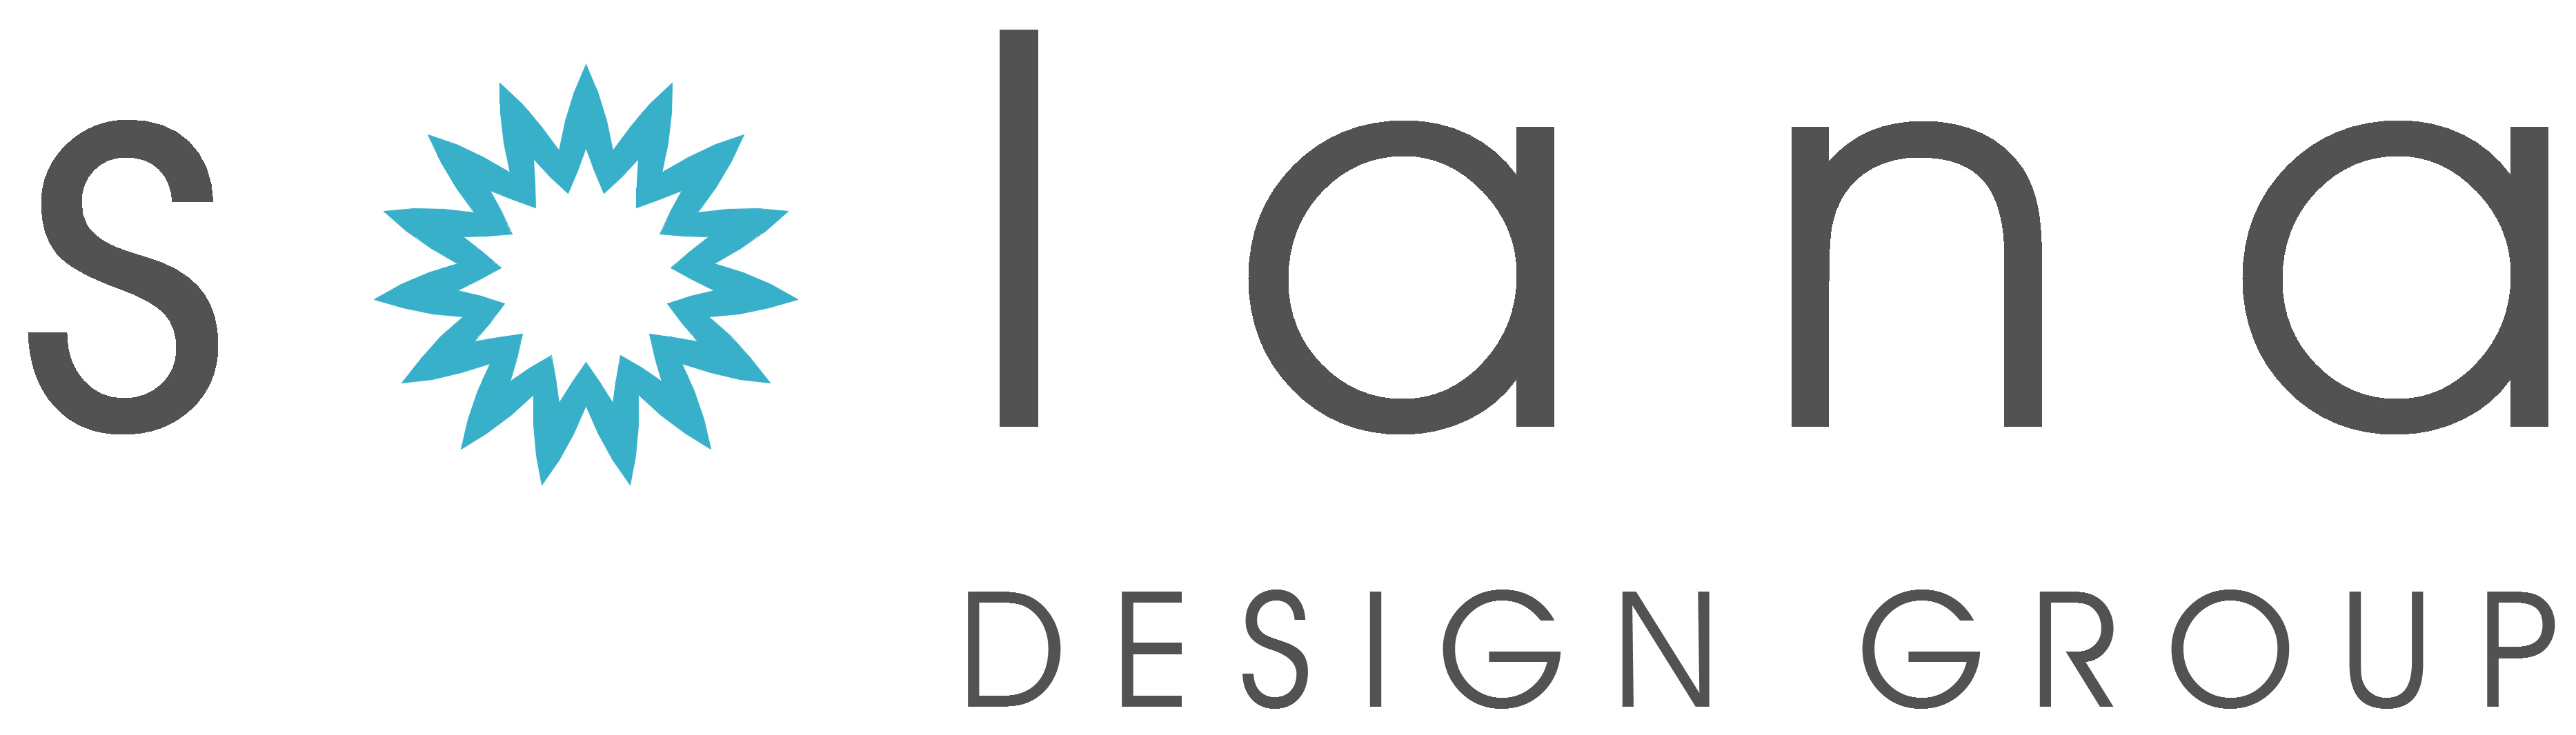 Solana Design Group